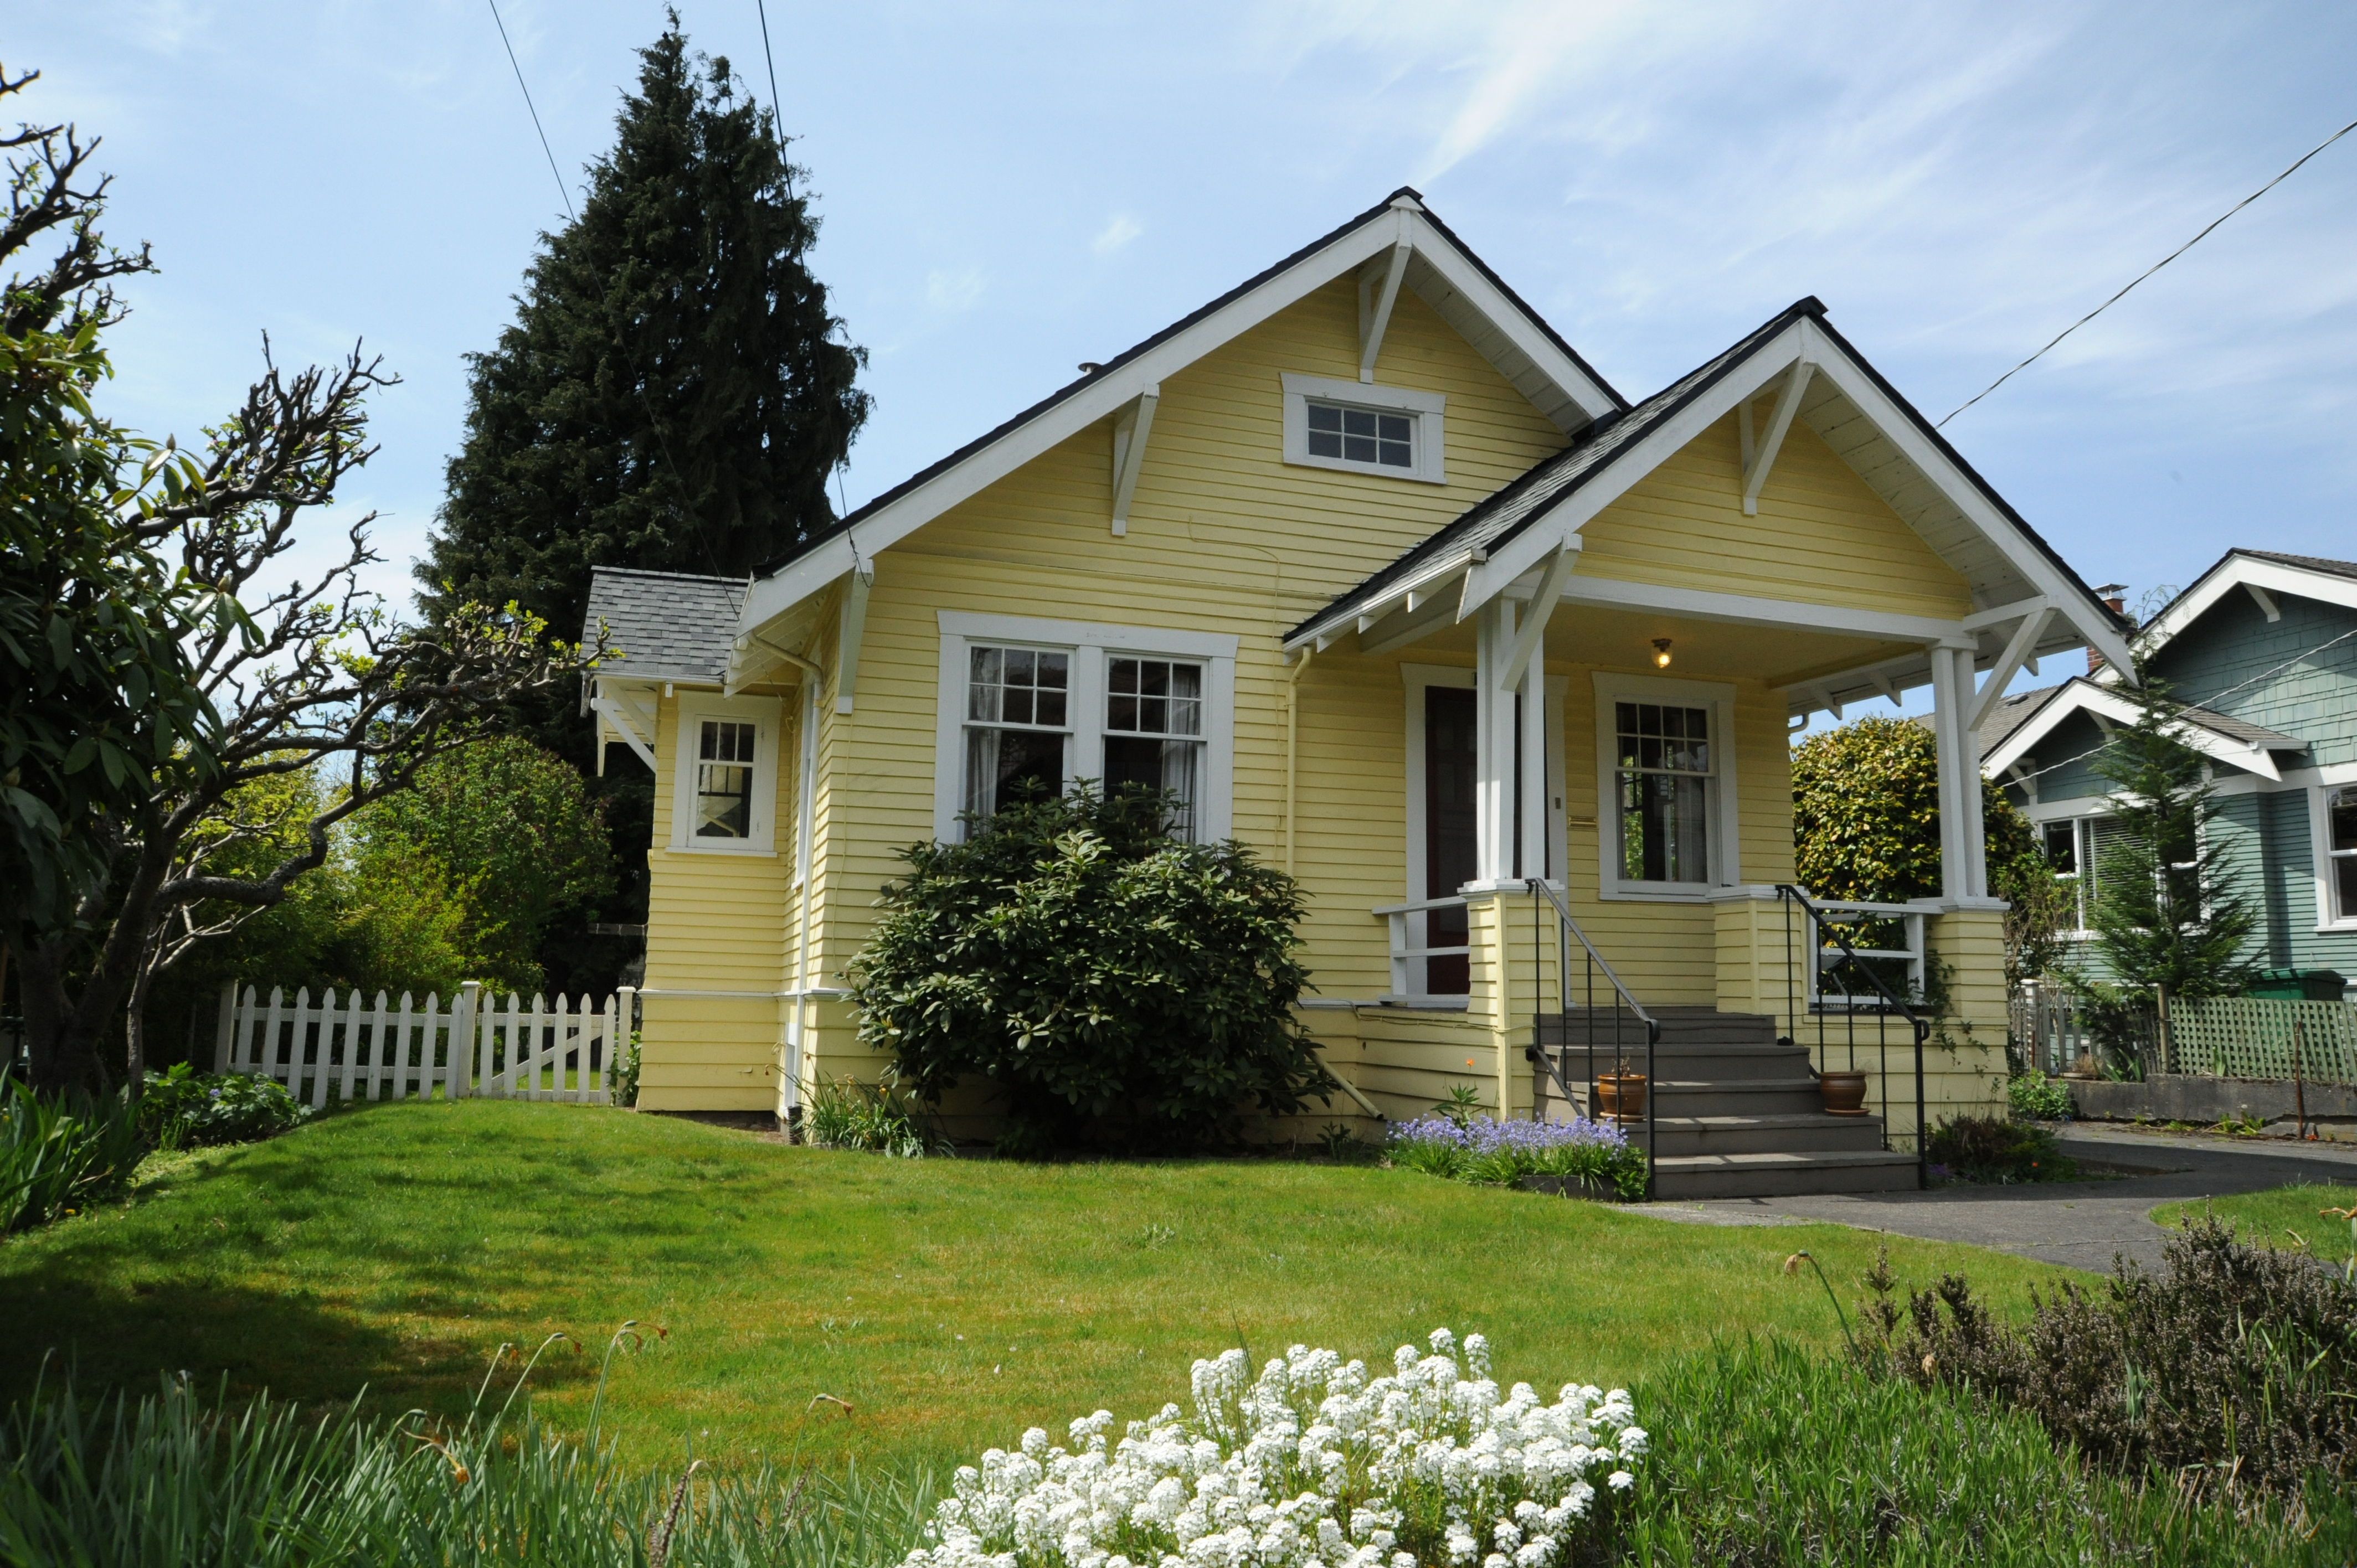 Yellow House with White Trim